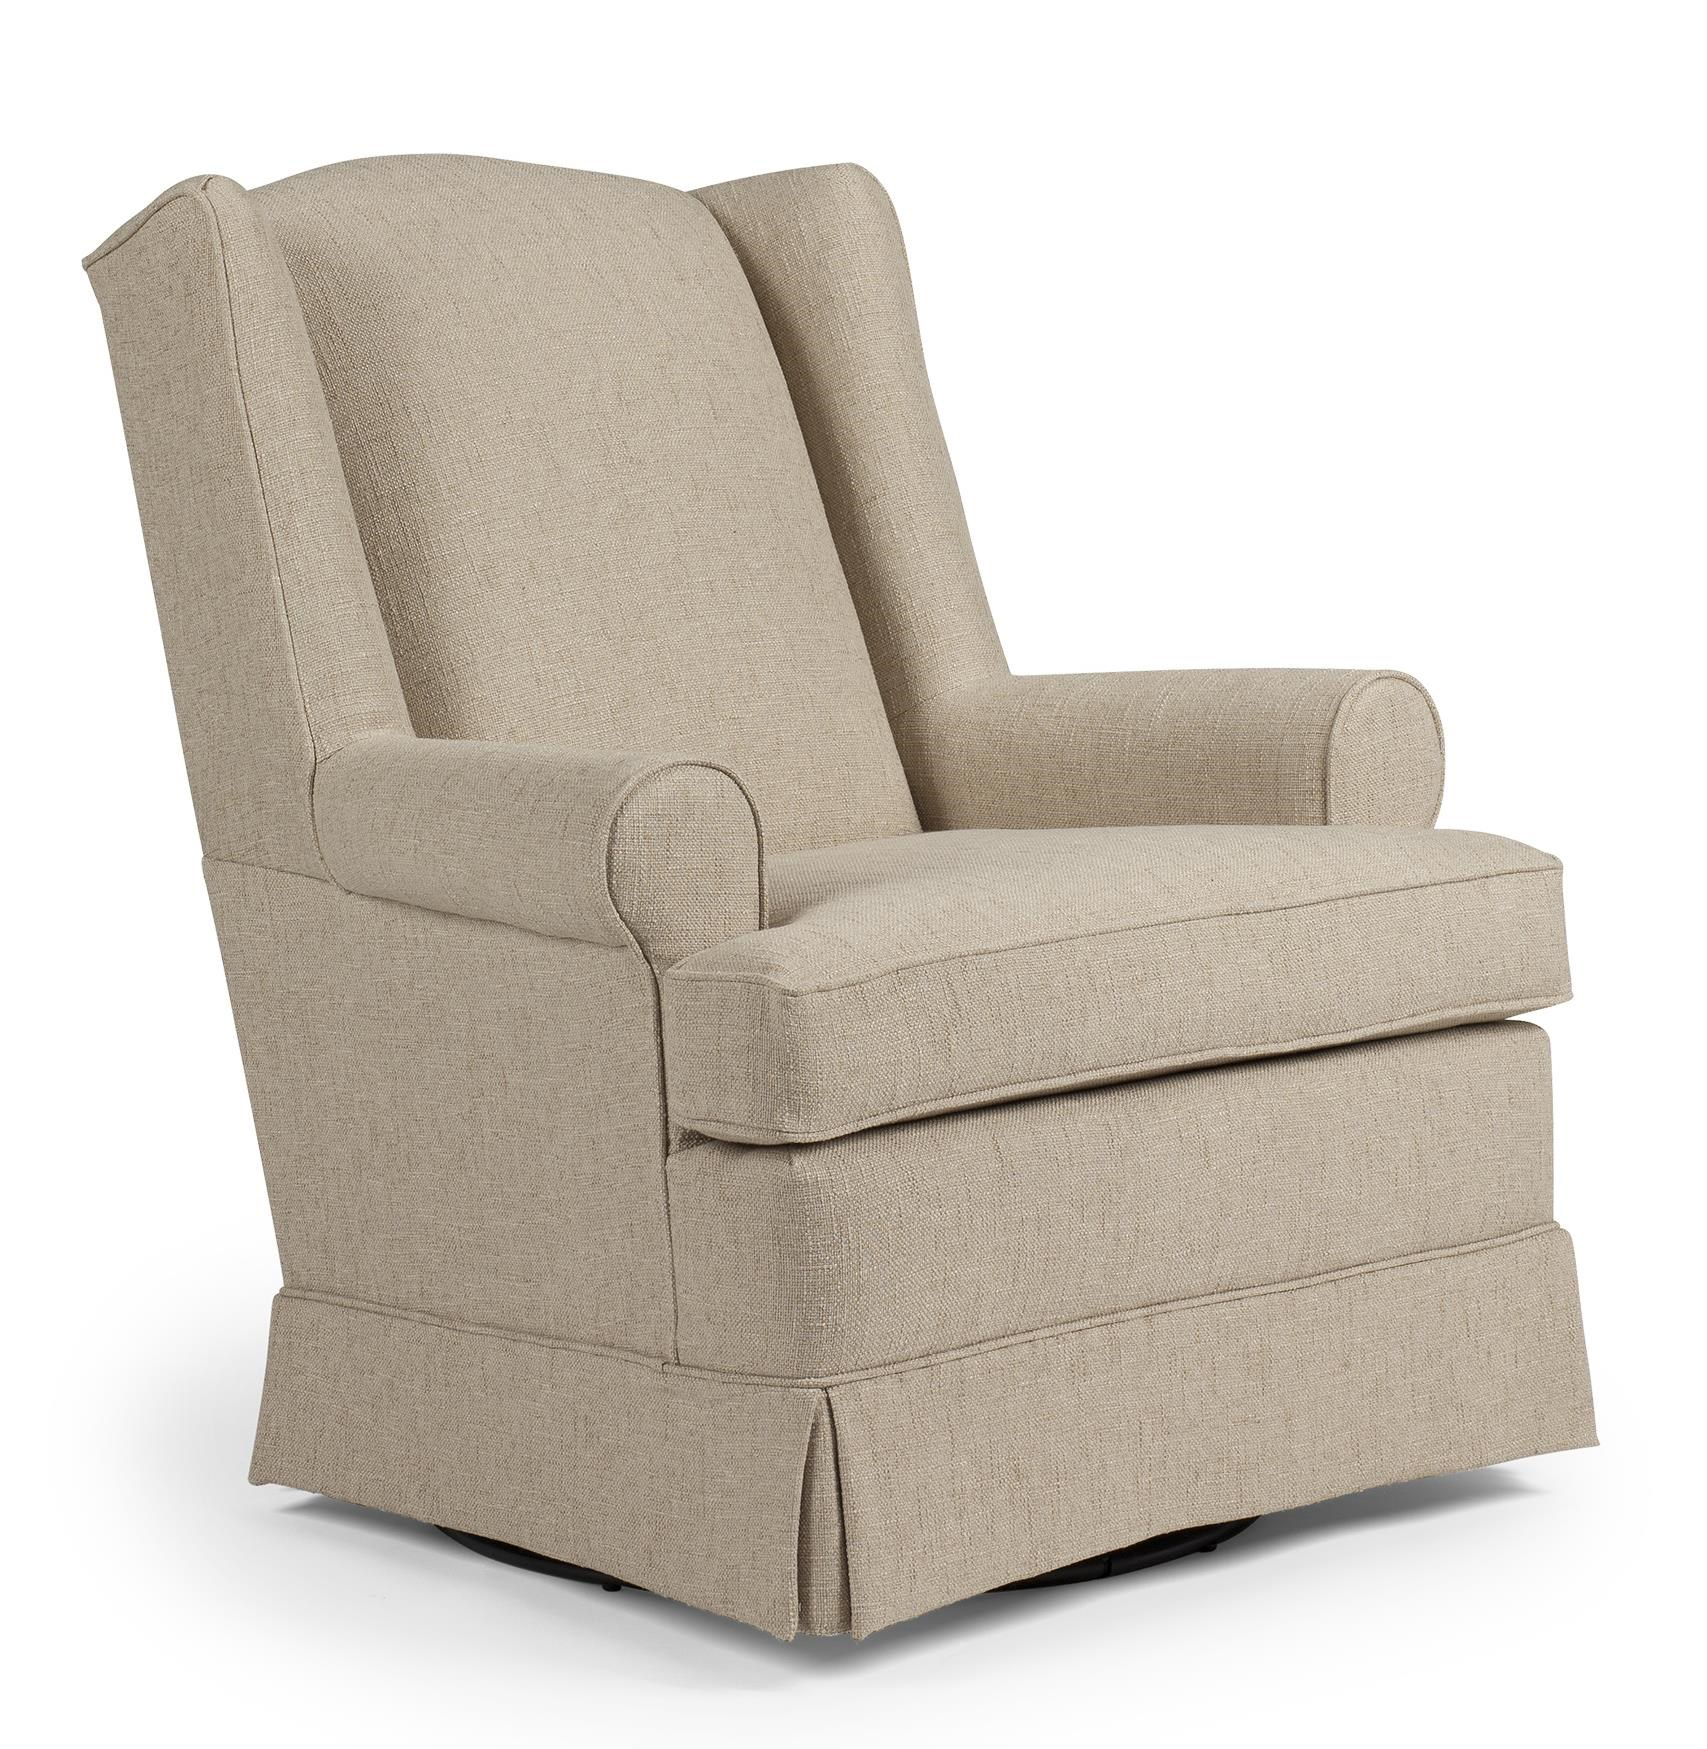 best chairs swivel glider revolving chair parts storytime series and ottomans roni skirted bullard furniture upholstered fayetteville nc